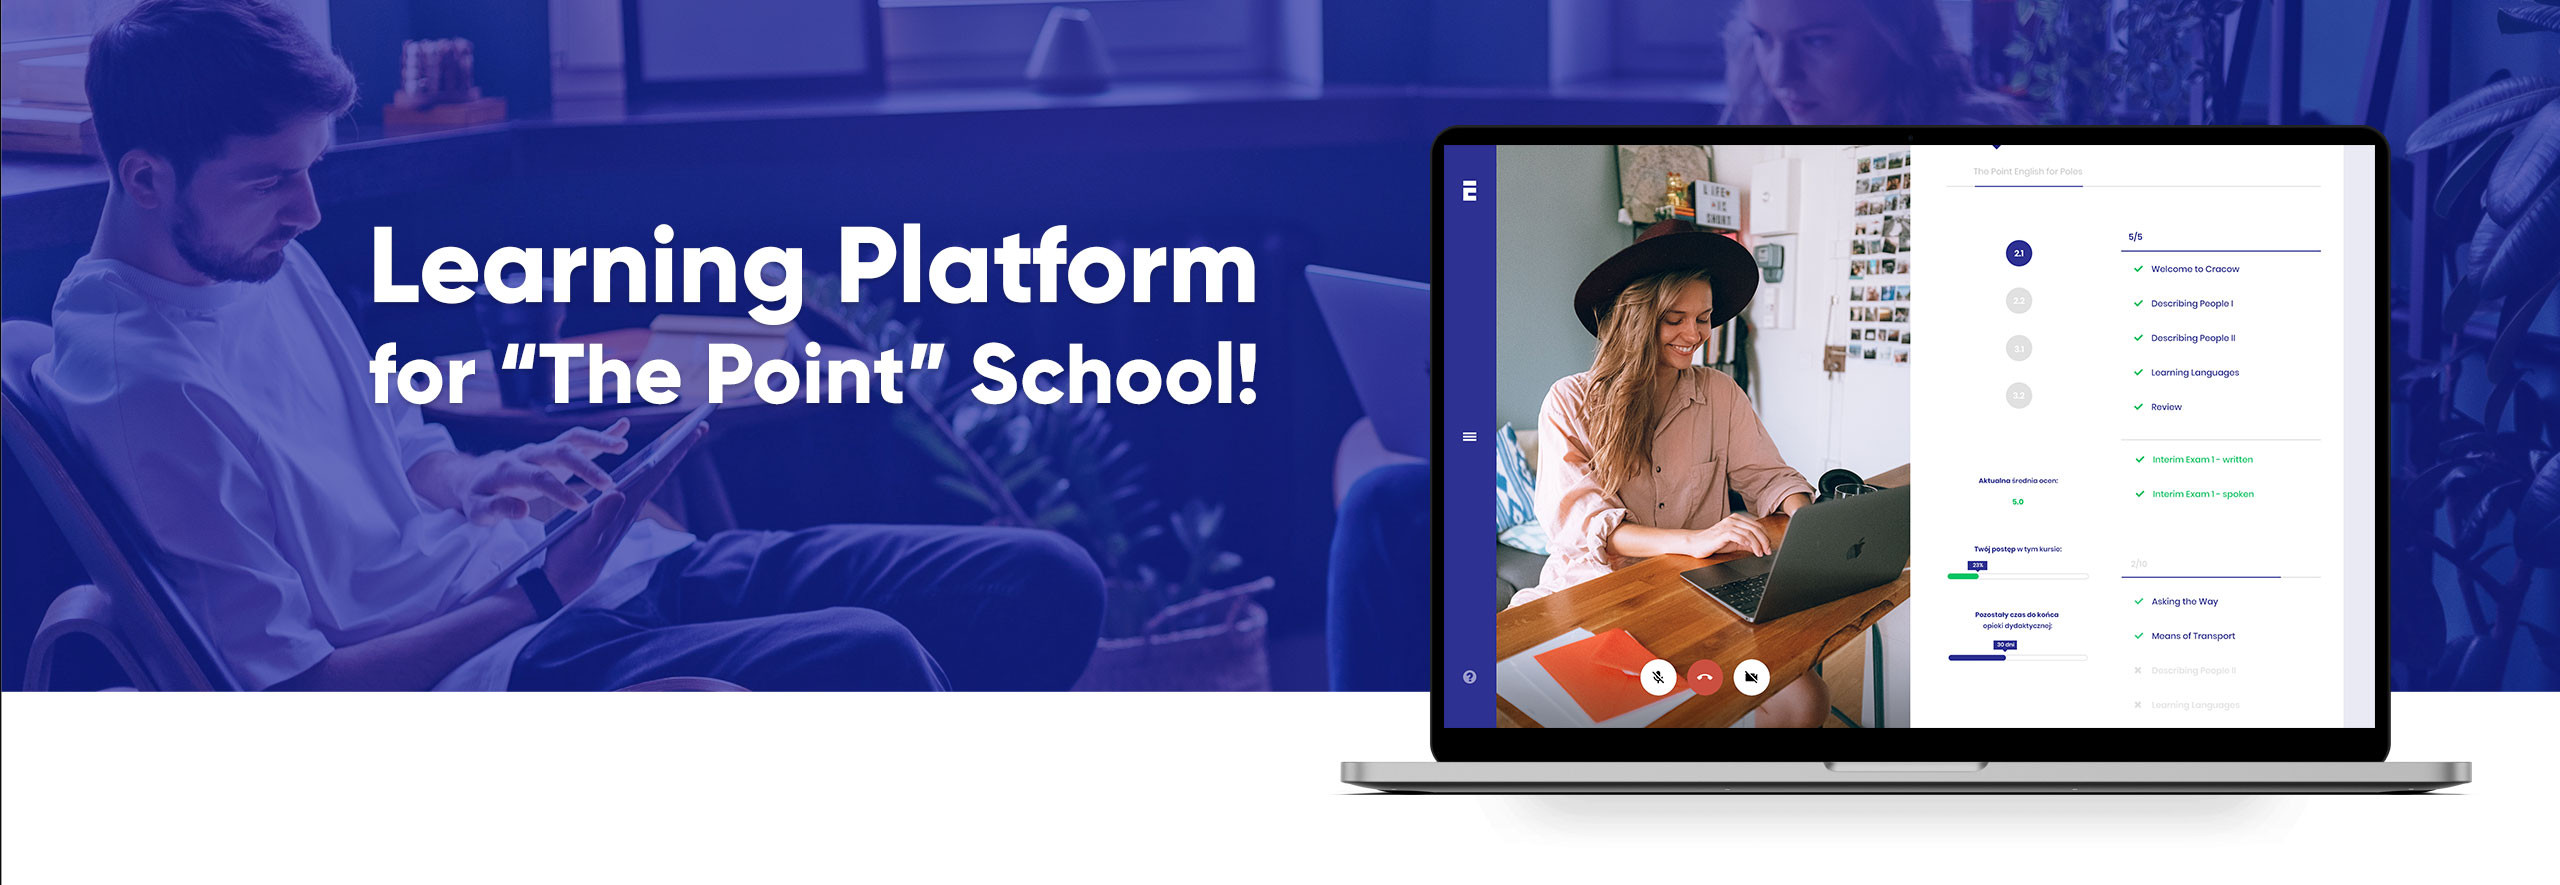 Learning Platform for The Point school!